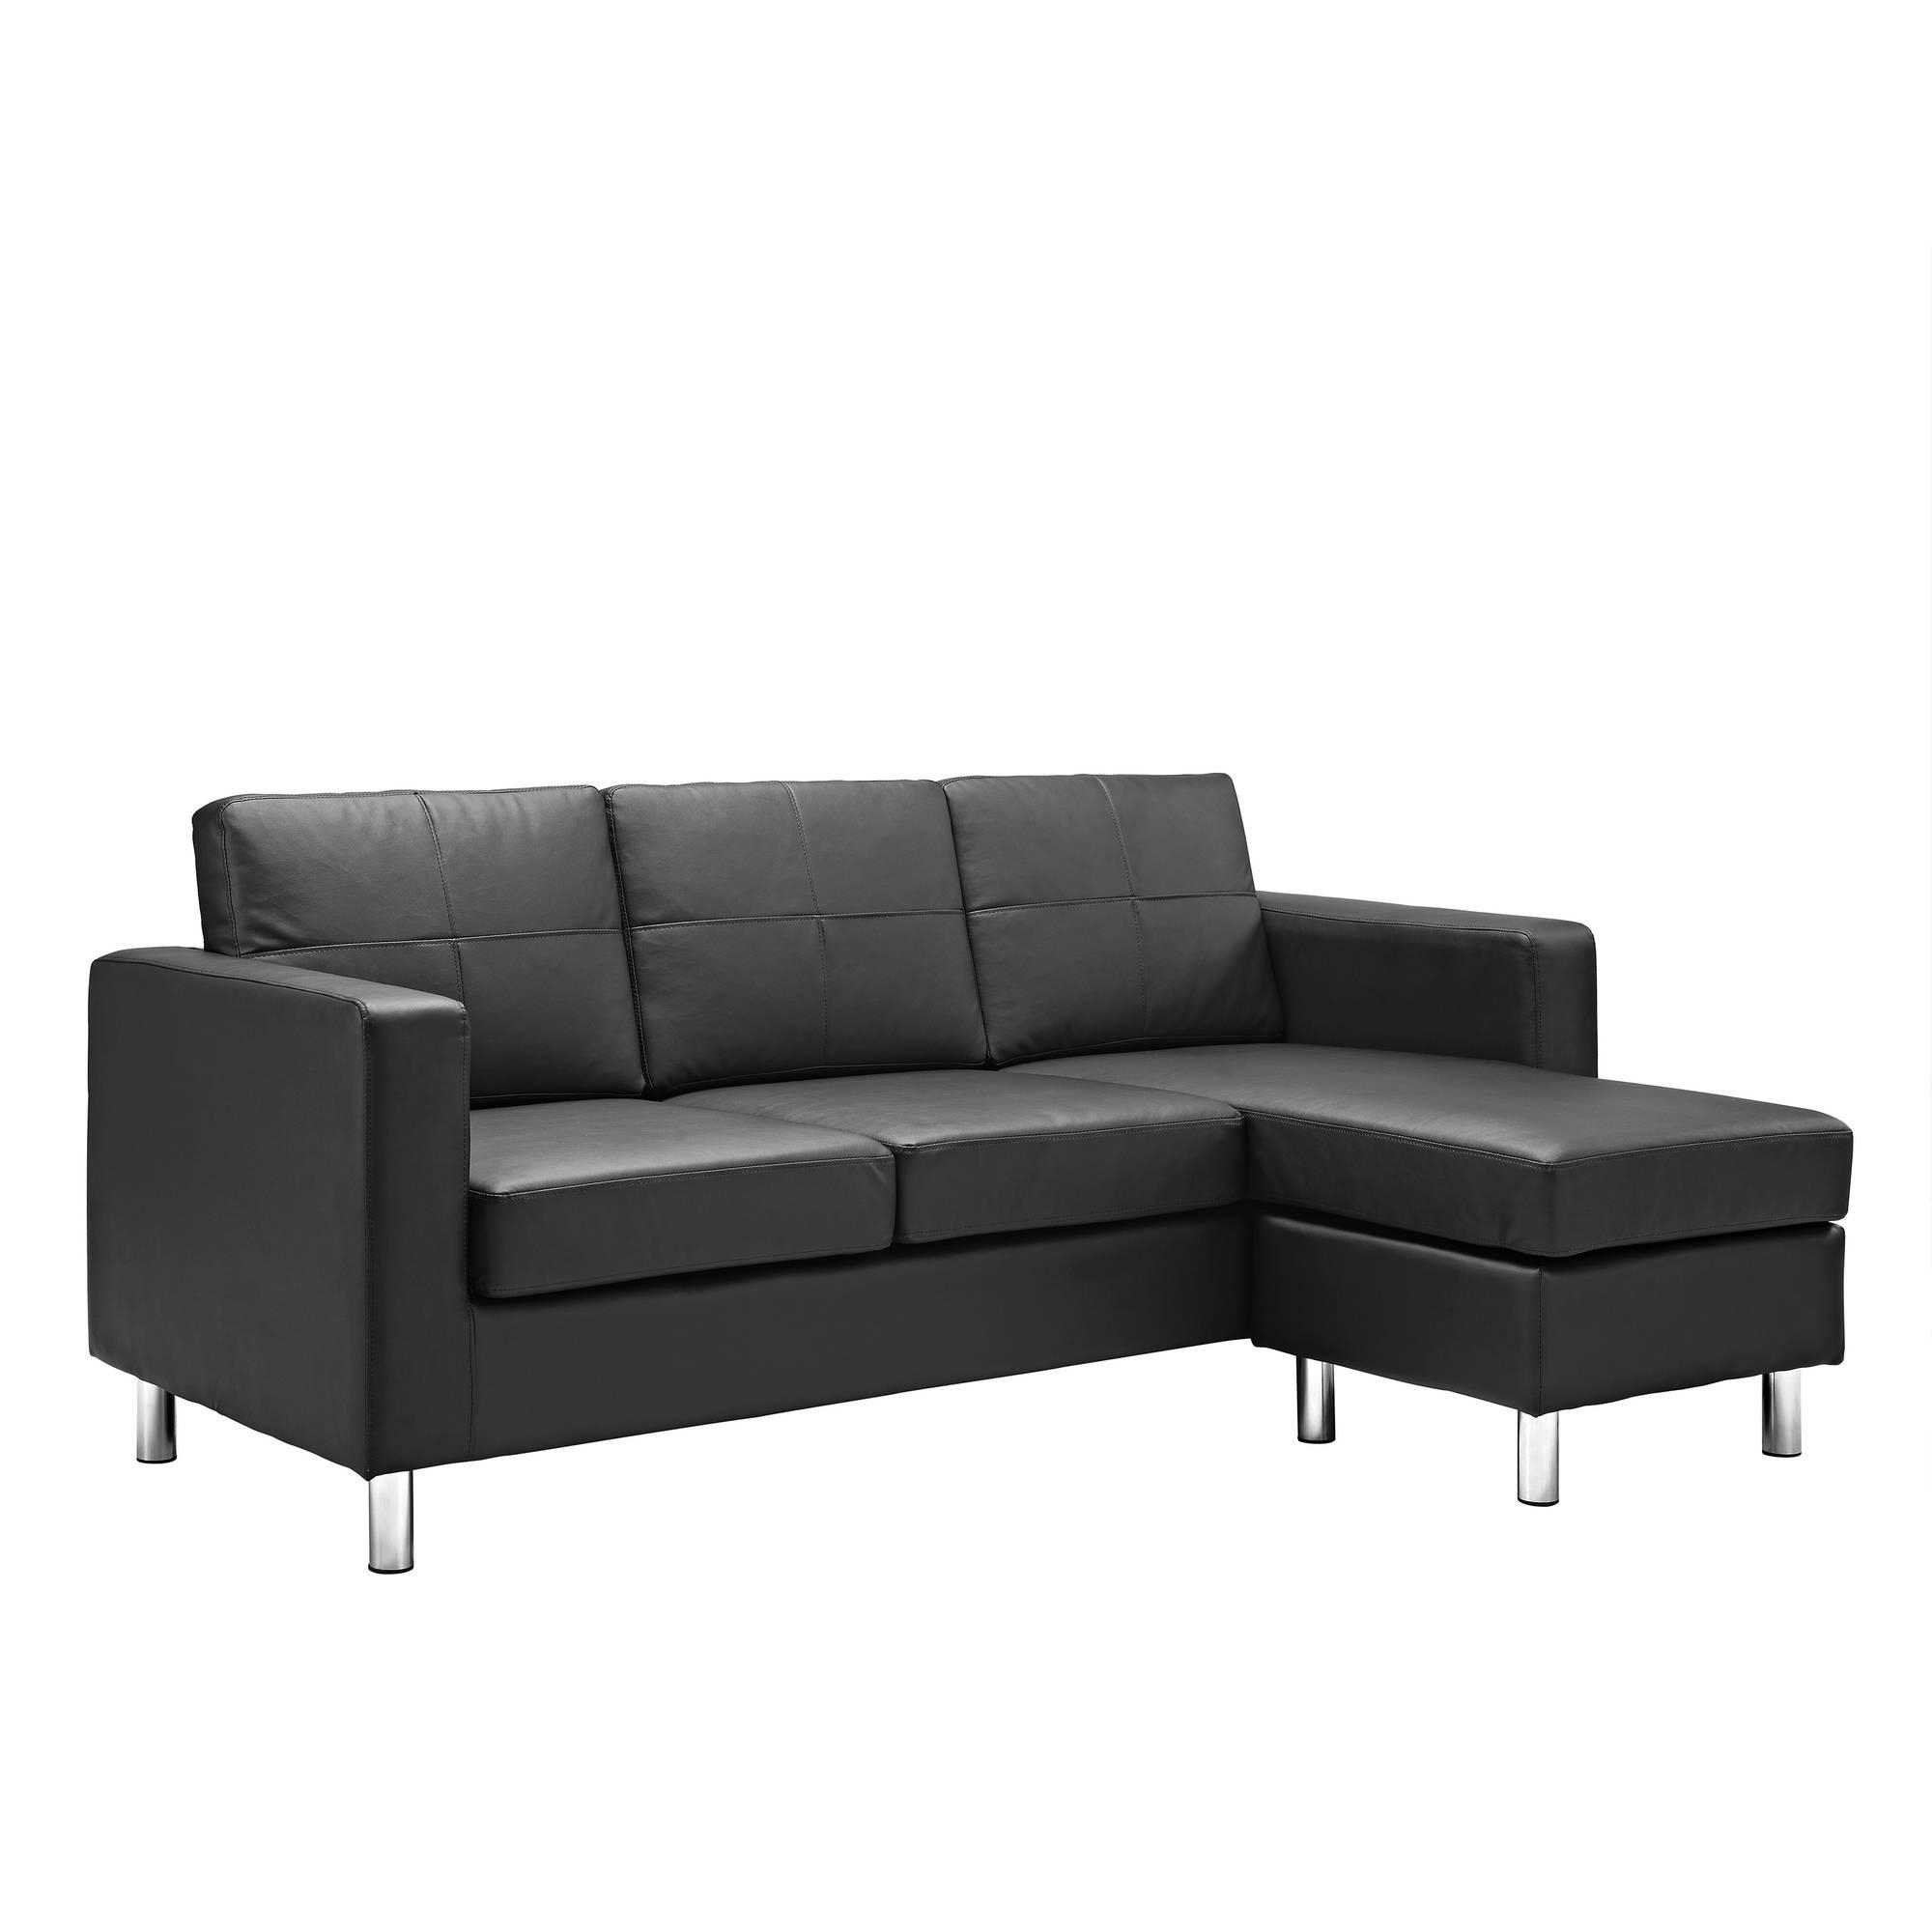 Dorel Living Small Spaces Configurable Sectional Sofa, Multiple For Wallmart Sofa (View 11 of 20)